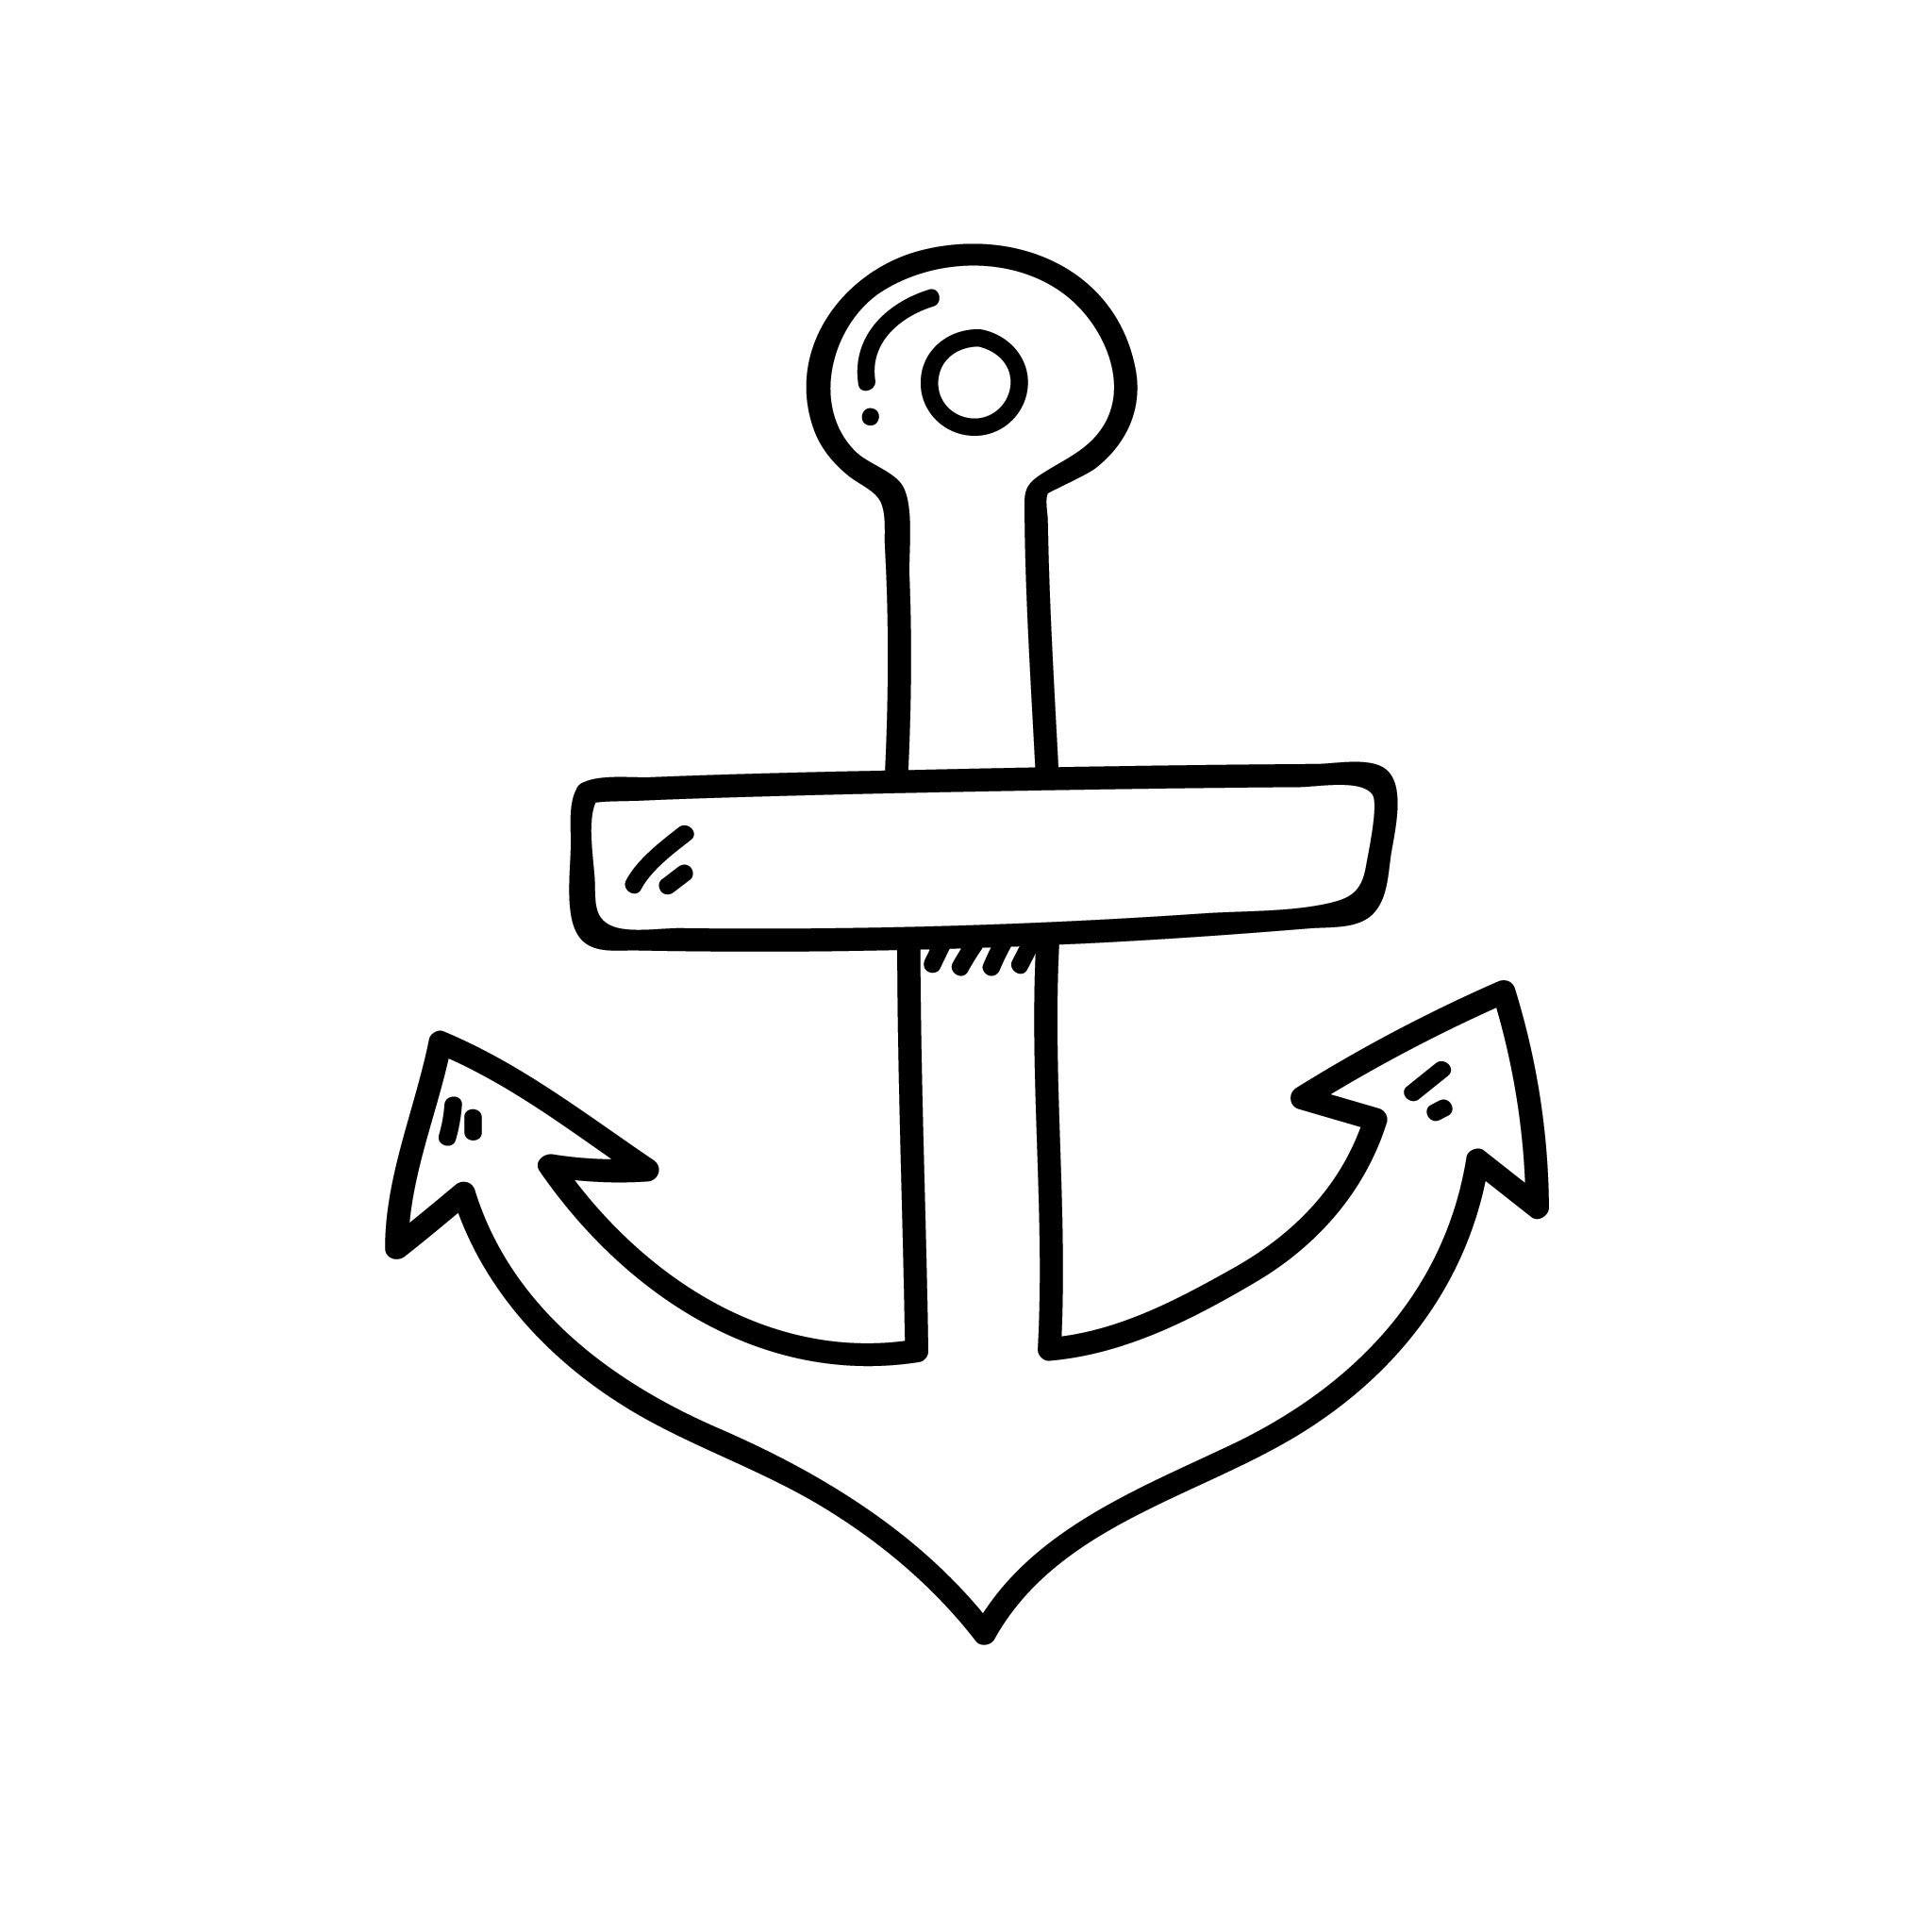 Anchor Temporary Tatoo Design. Tags: Black and White, Minimal, Traditional, Anchors